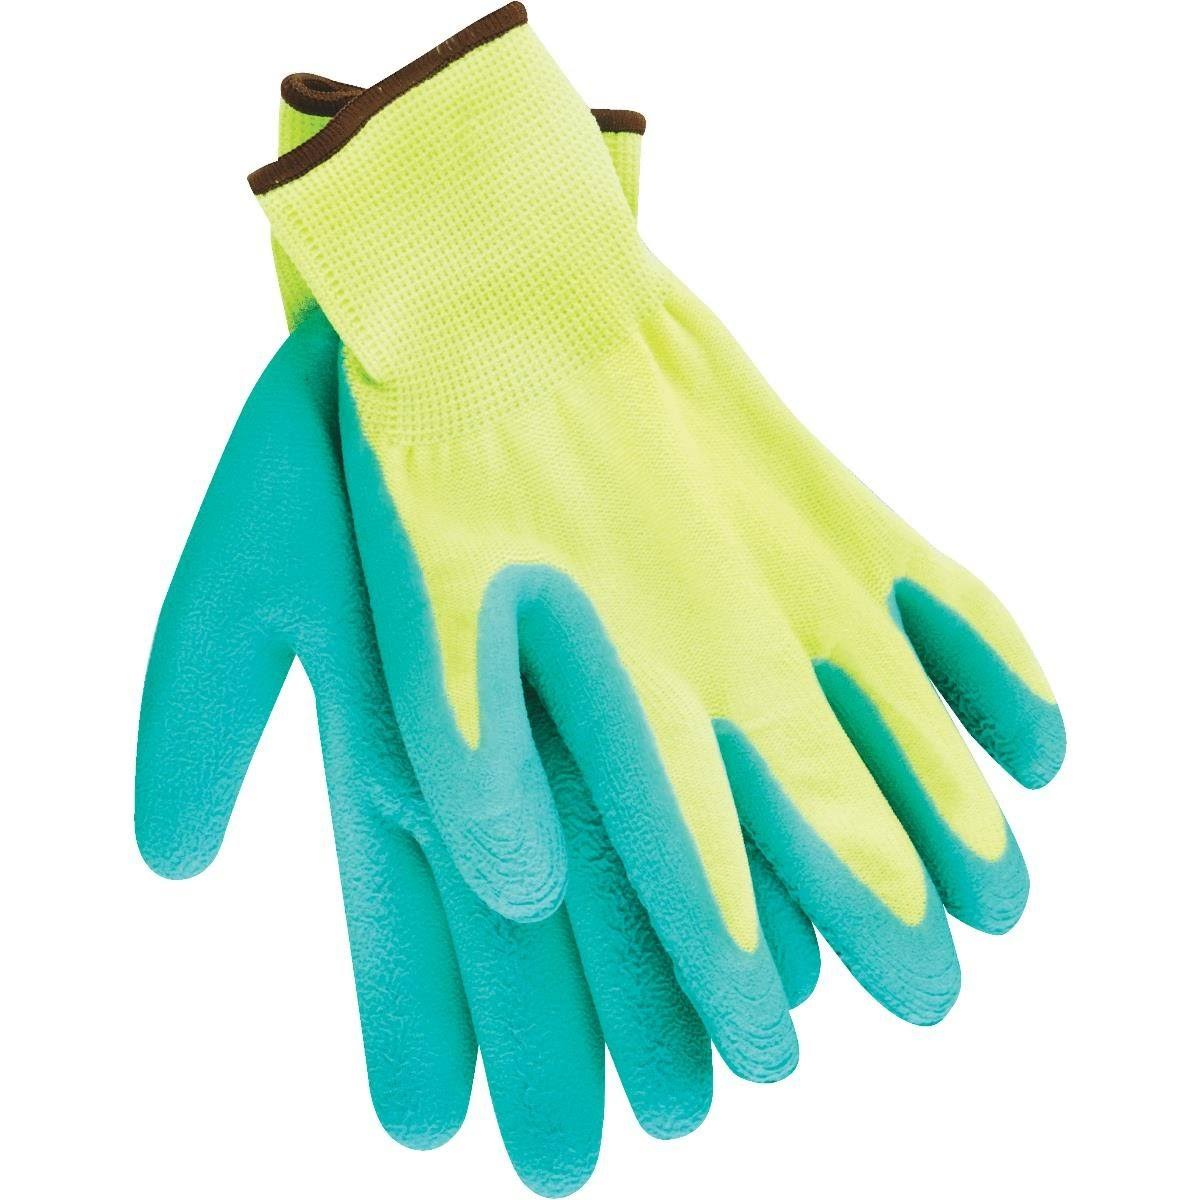 SIM Supply Inc. Grip Glove 703616 - Green, Large